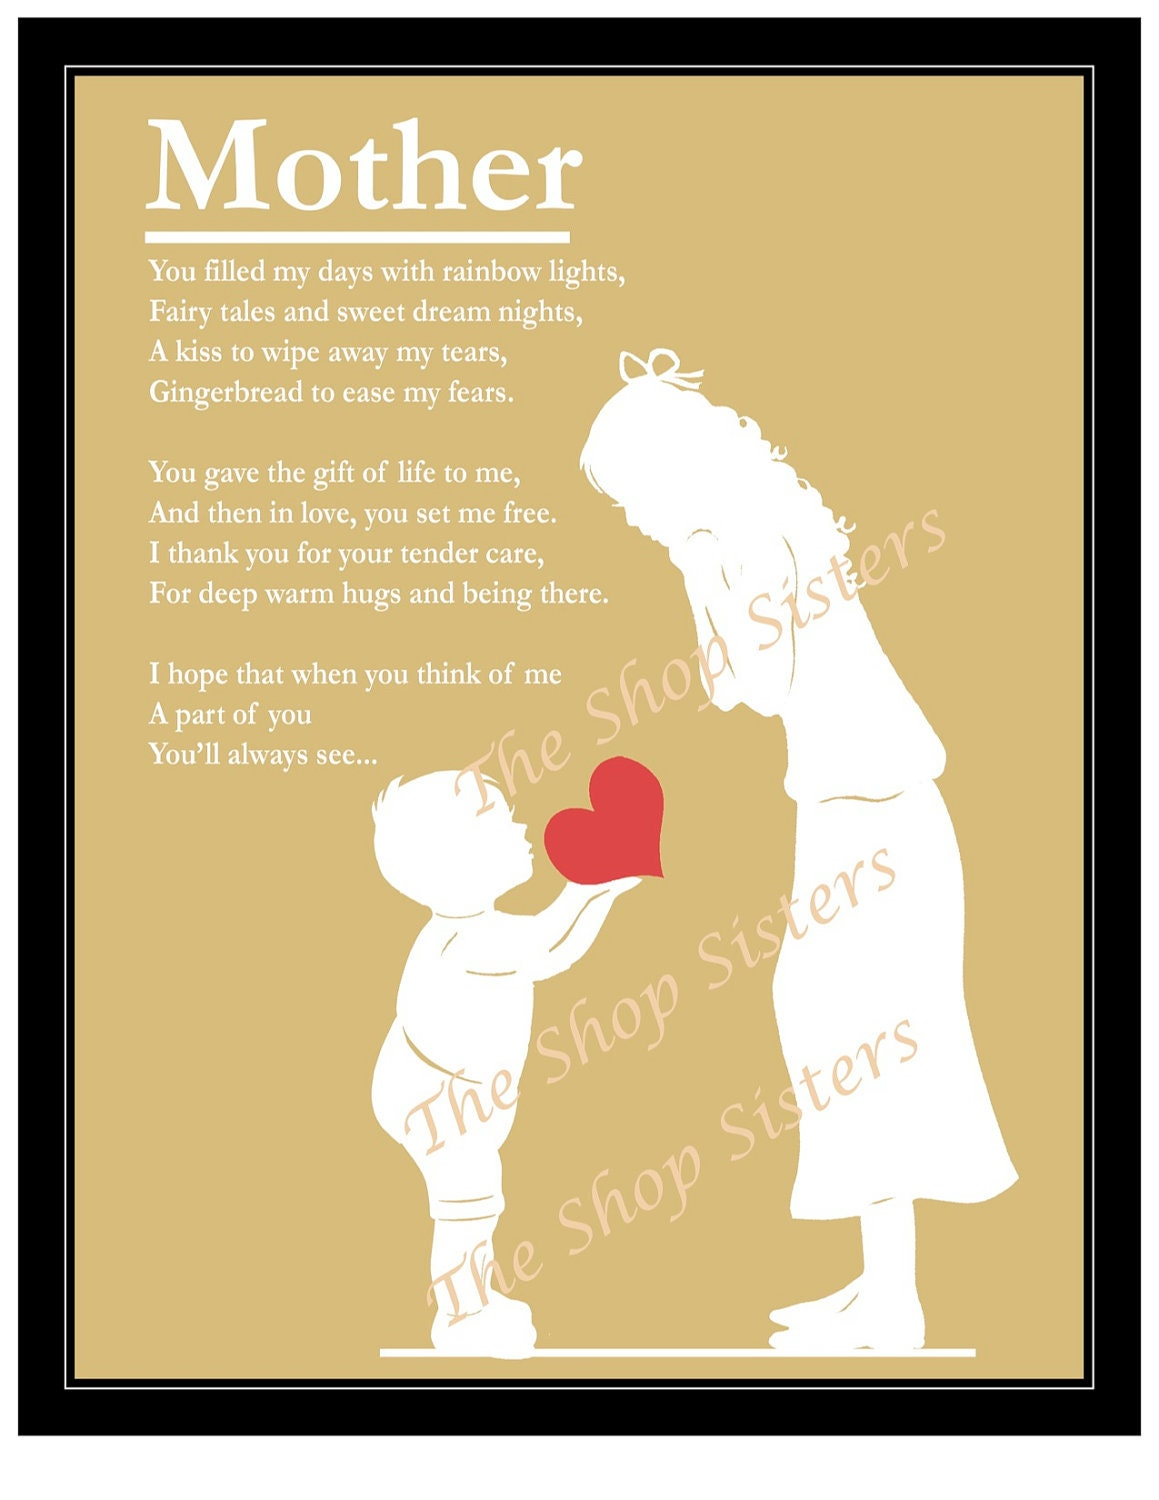 Heartbroken Mom Warns Others After 18 Year Old Daughter: Mother's Day Mother And Son Poem Heart Silhouette Natural